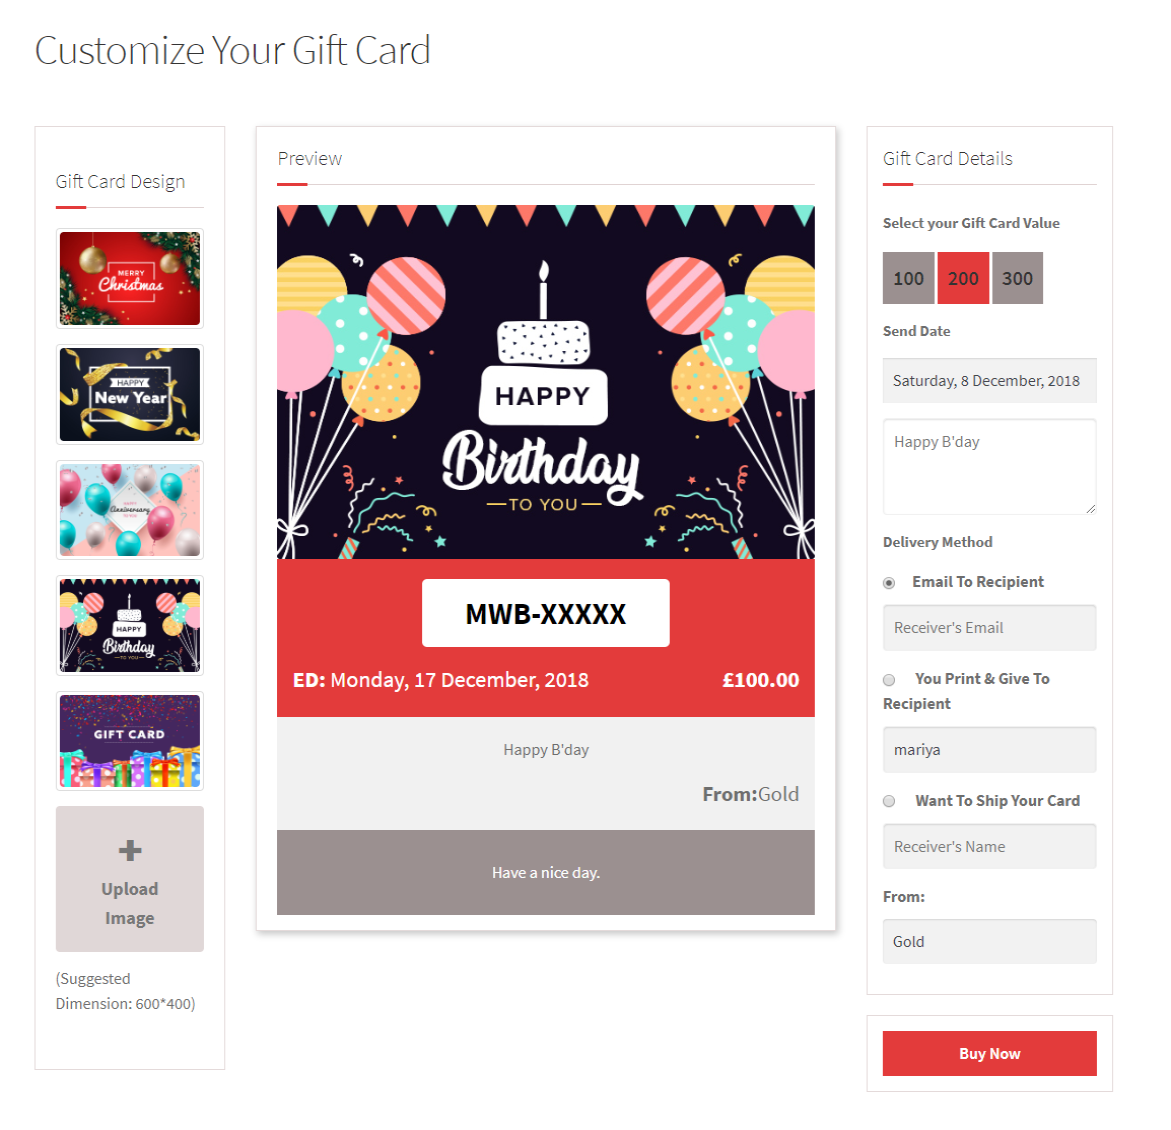 woocommerce-customizable-gift-card-product